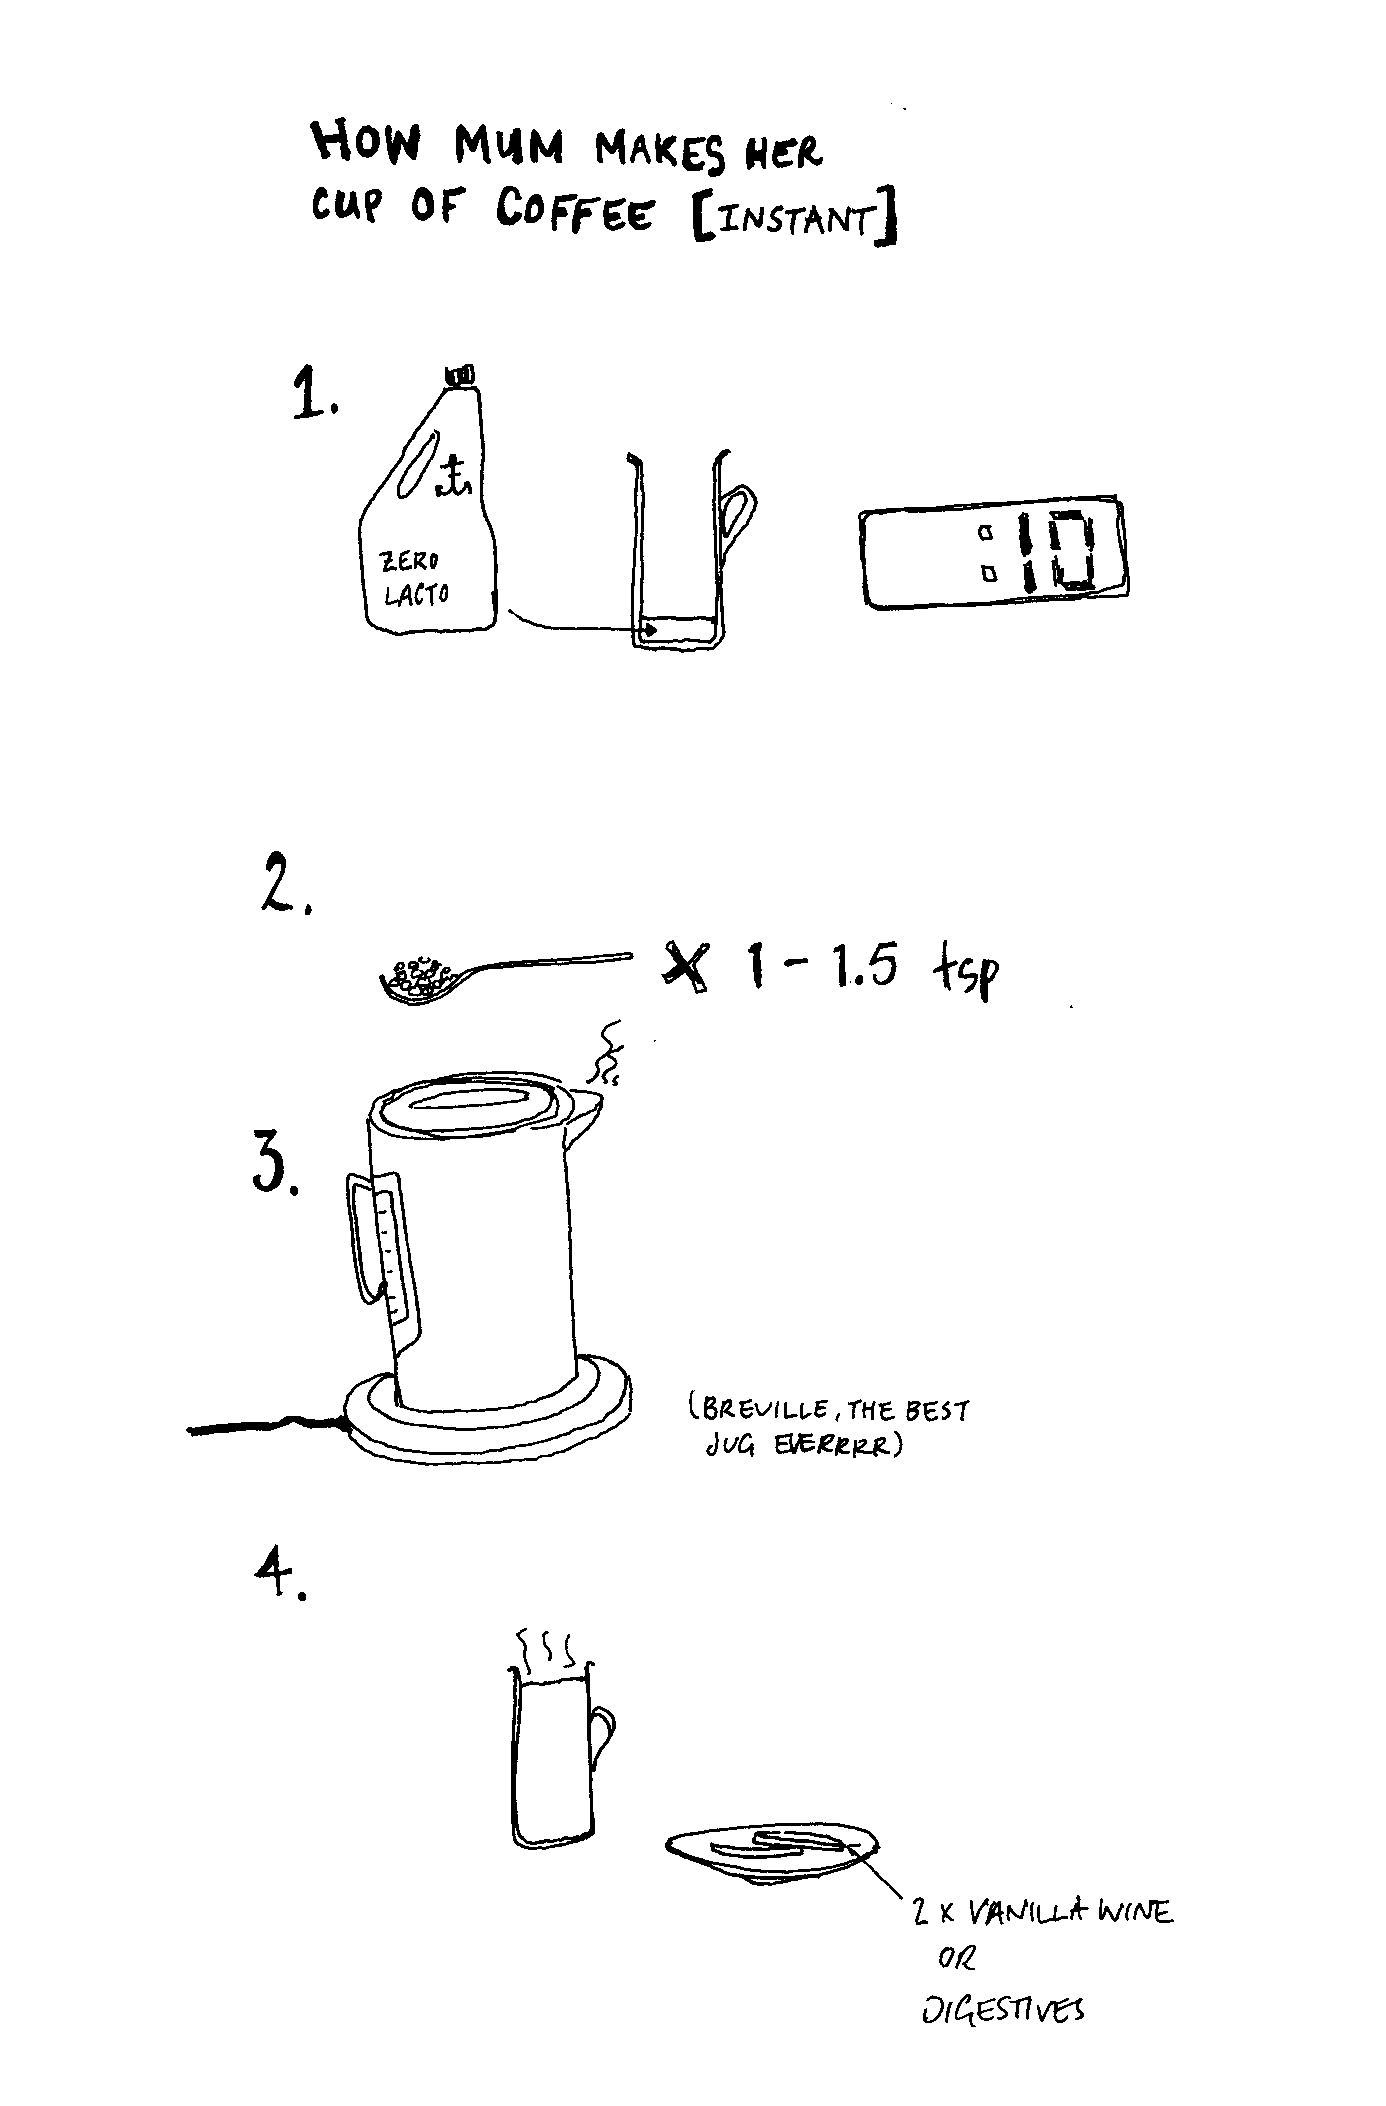 1. Add the 30ml zero lacto (full) into the cup and put in the microwave for 10 seconds.  2. Add 1-1.5 teaspoons of instant coffee.  3. Wait for water to boil in jug.  4. Add to cup and enjoy with some digestives or Vanilla wines.